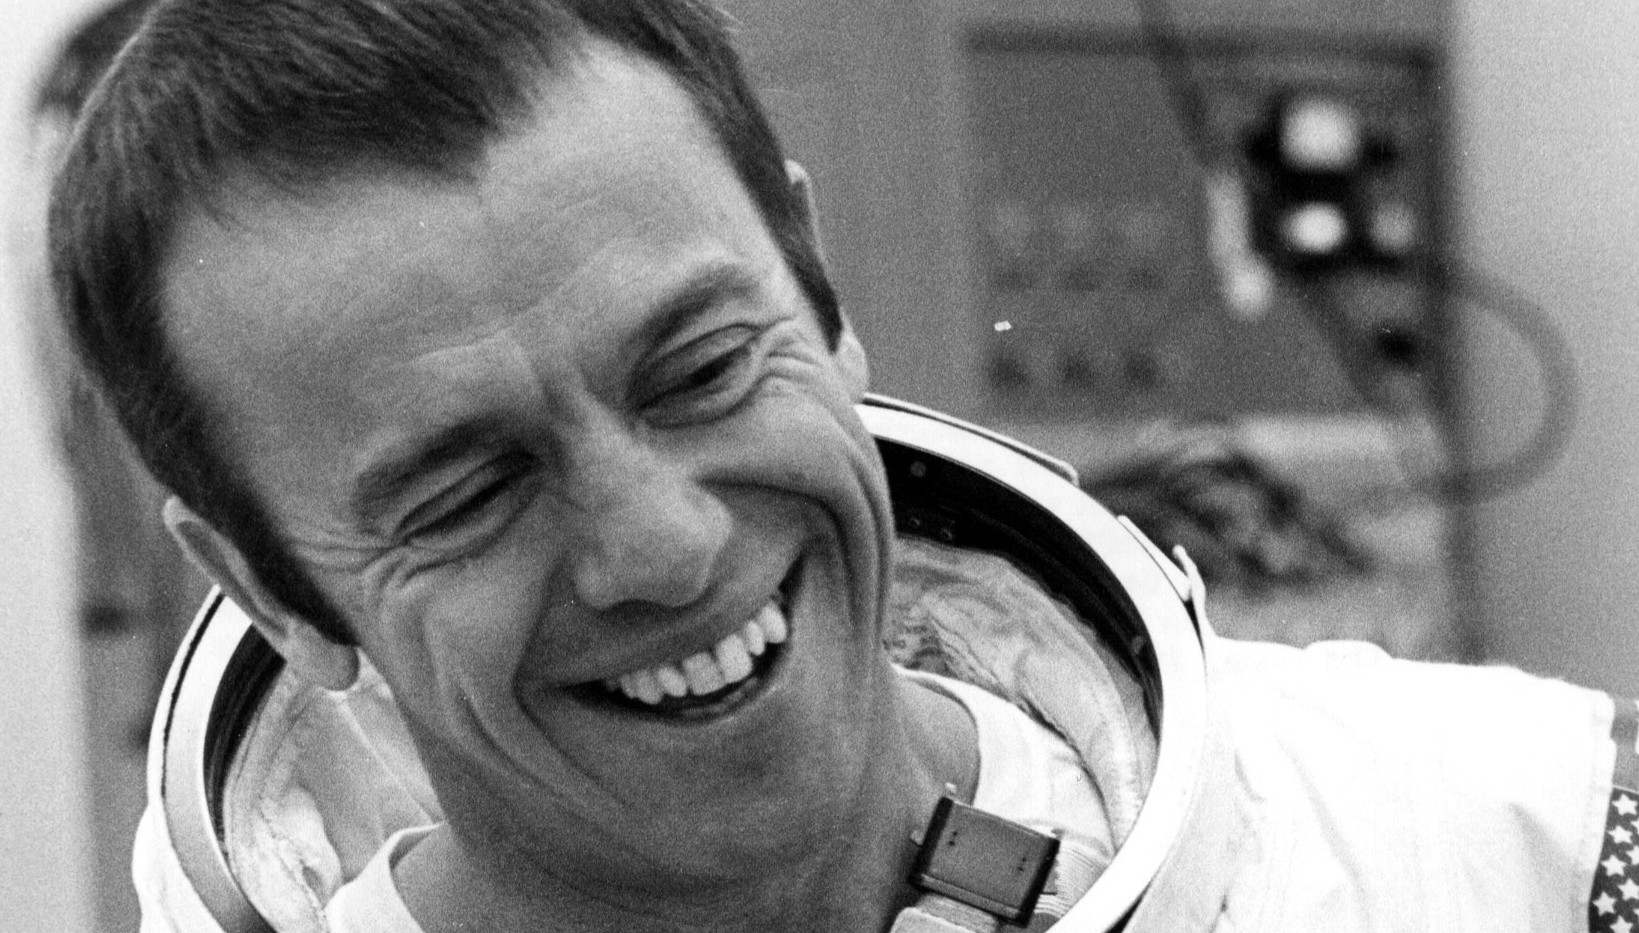 Alan Shepard, the first American in Space